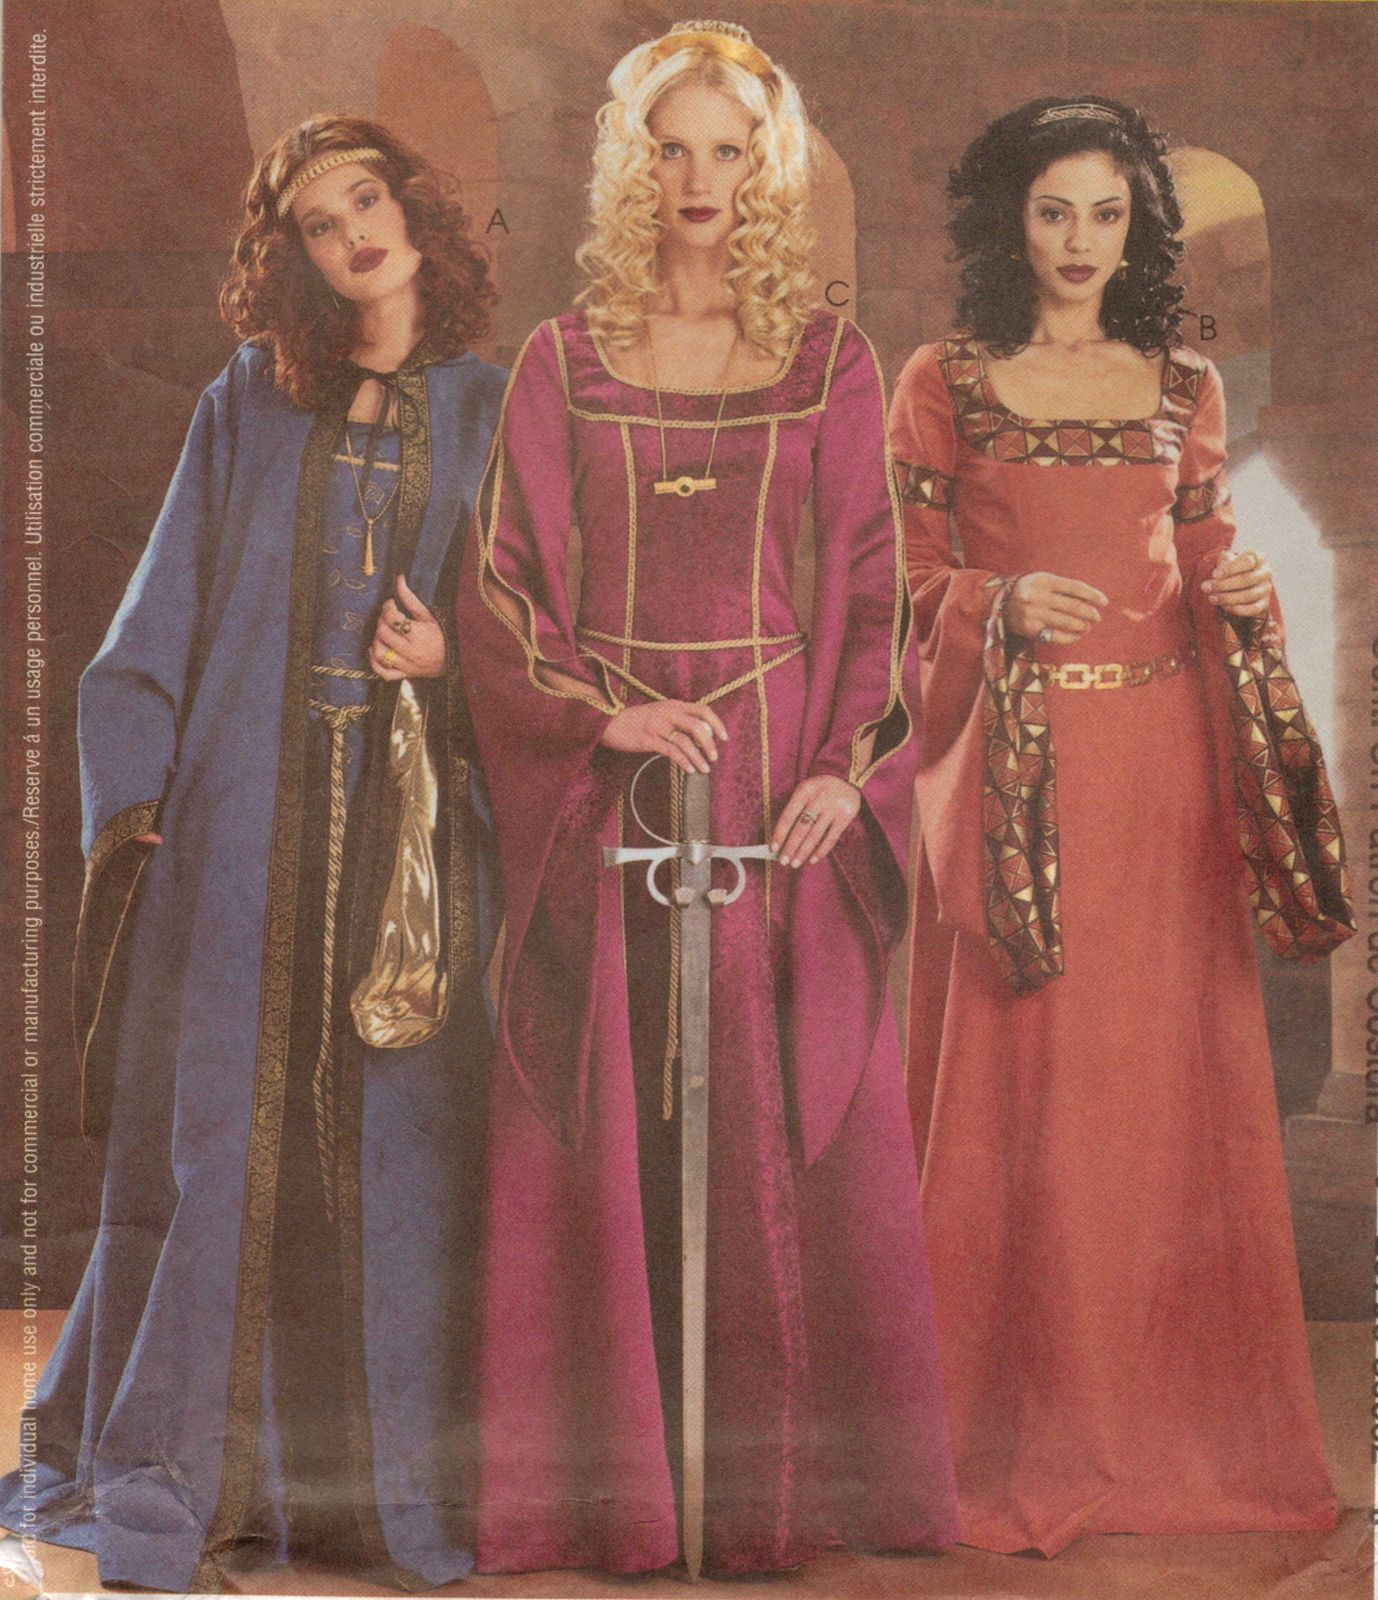 Pin by caper crafts on halloween costumes sew patterns pinterest misses gothic medieval renaissance dress gown hooded cape costume pattern 14 20 jeuxipadfo Images